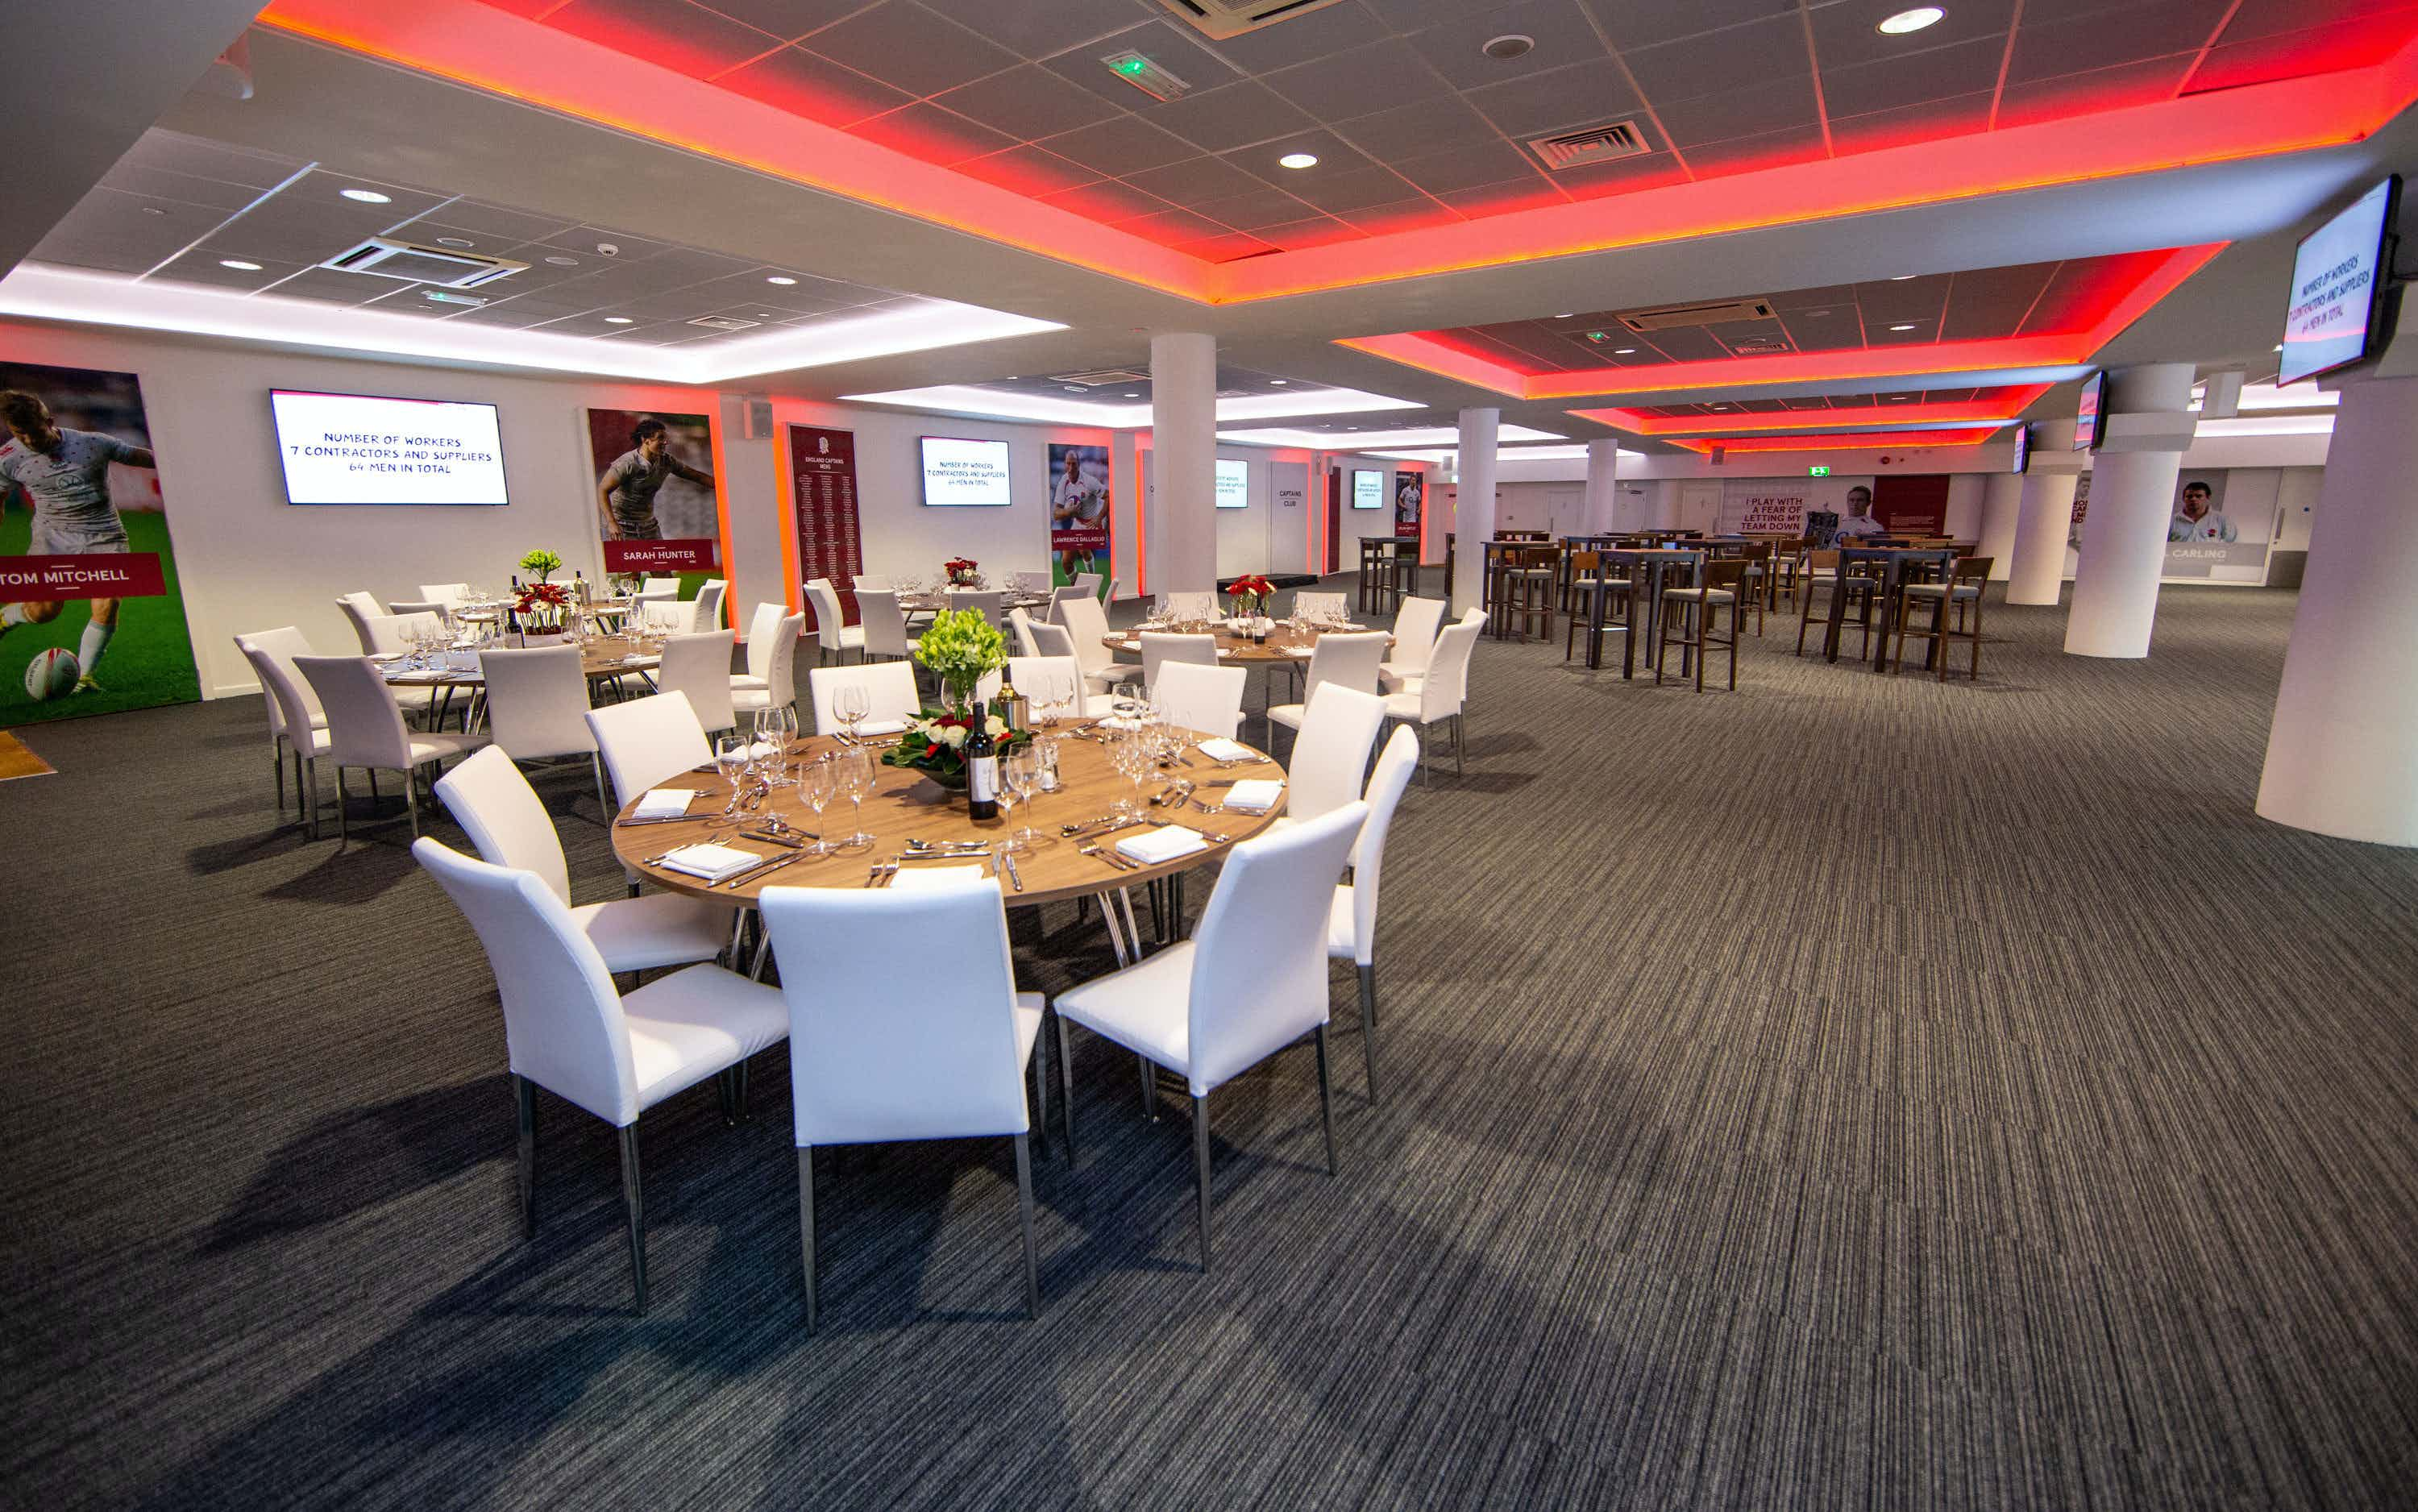 Captains Club, Twickenham Stadium